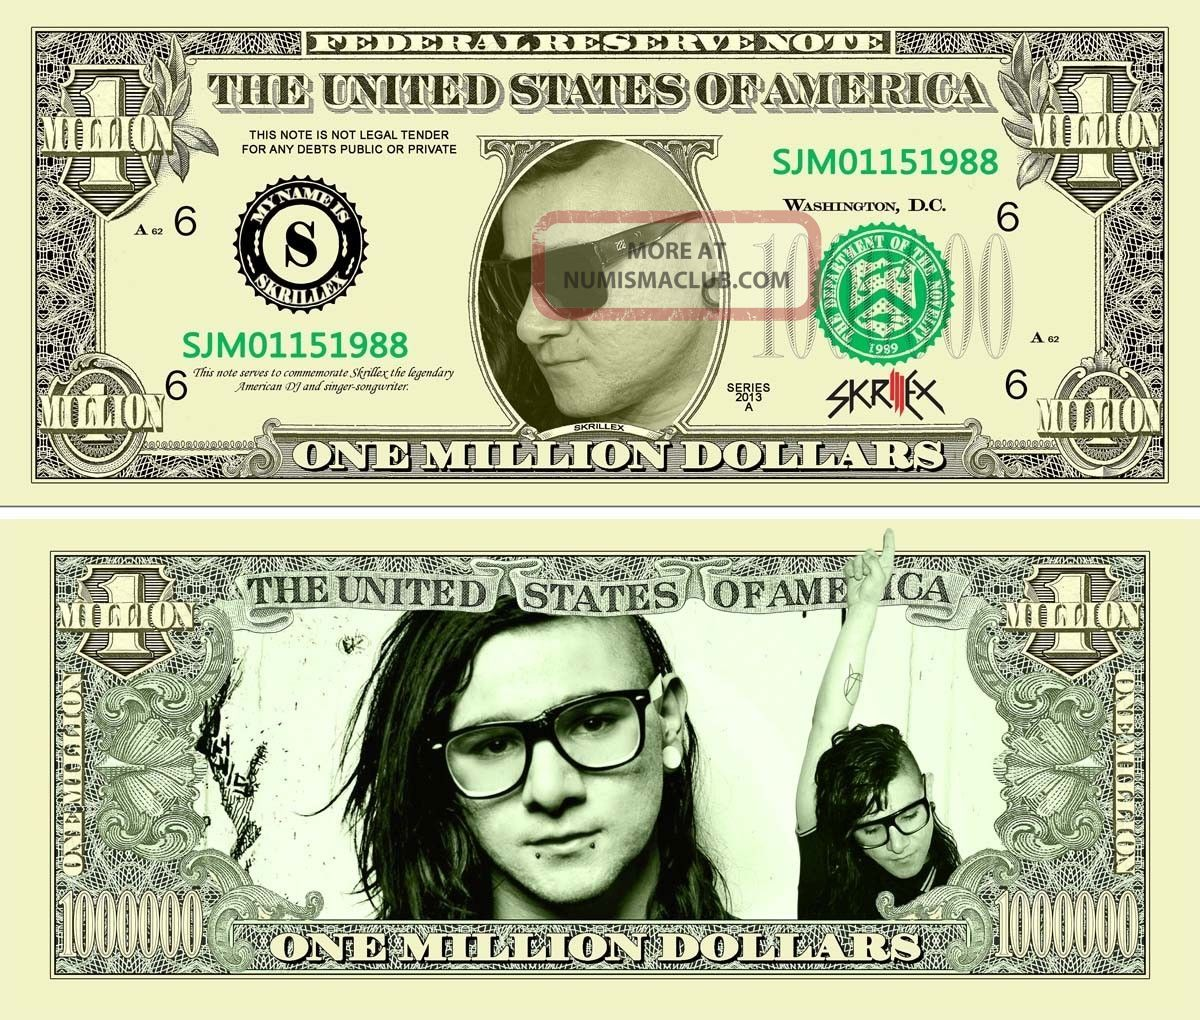 Skrillex One Million Dollar Bills With A Very Realistic Look And Feel Paper Money: US photo